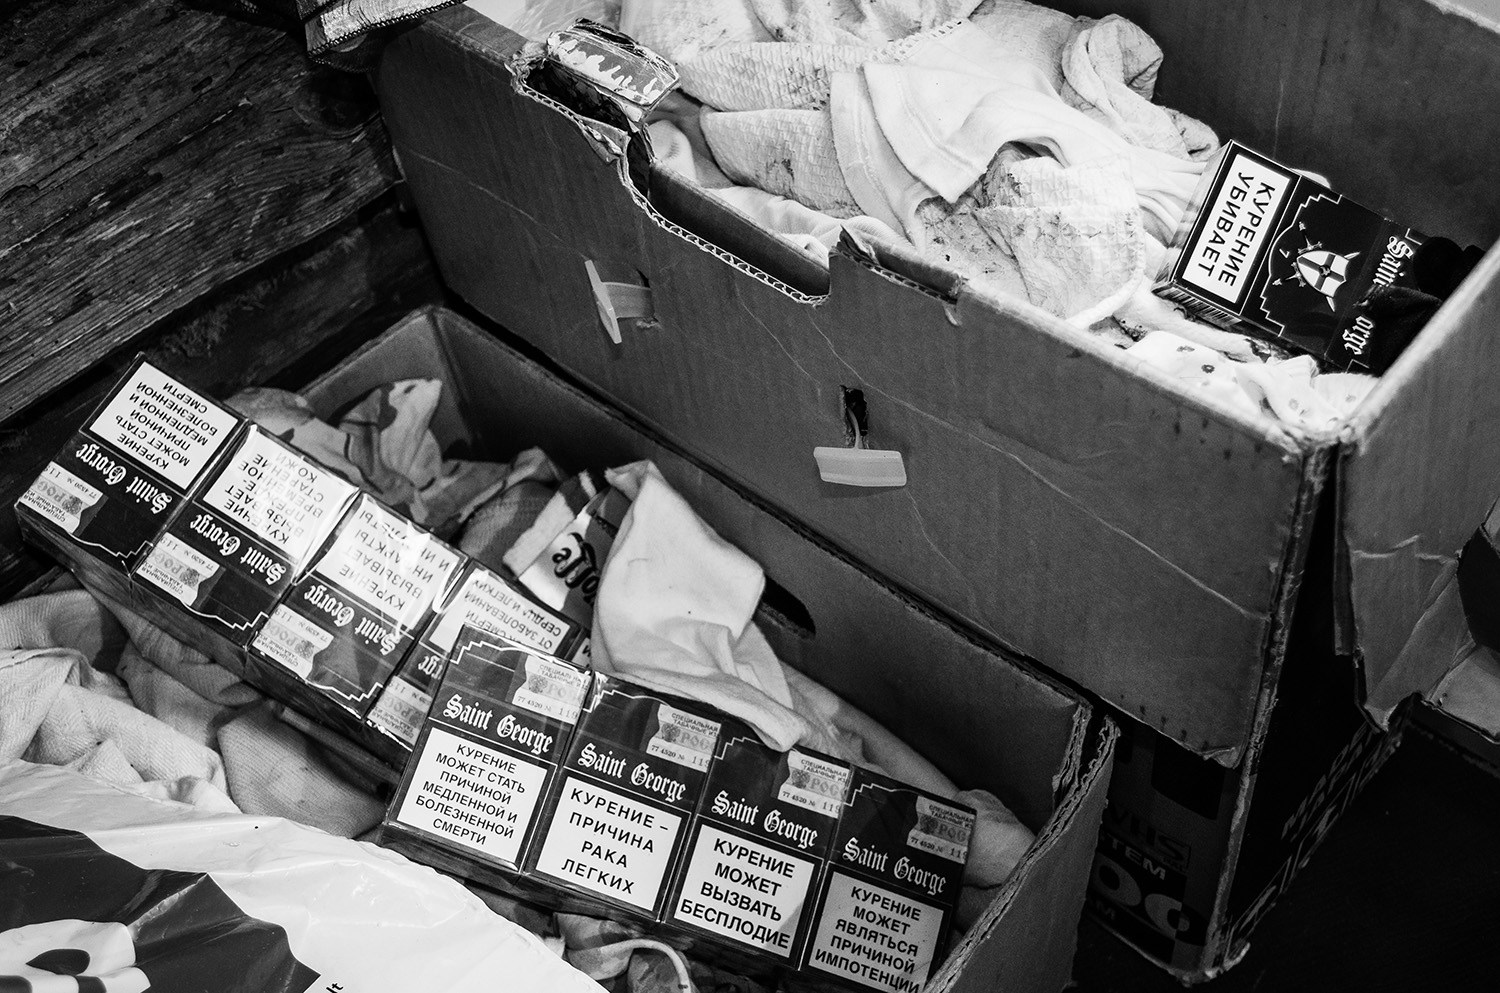 The smuggled cigarettes are hidden in a lot of different spots a